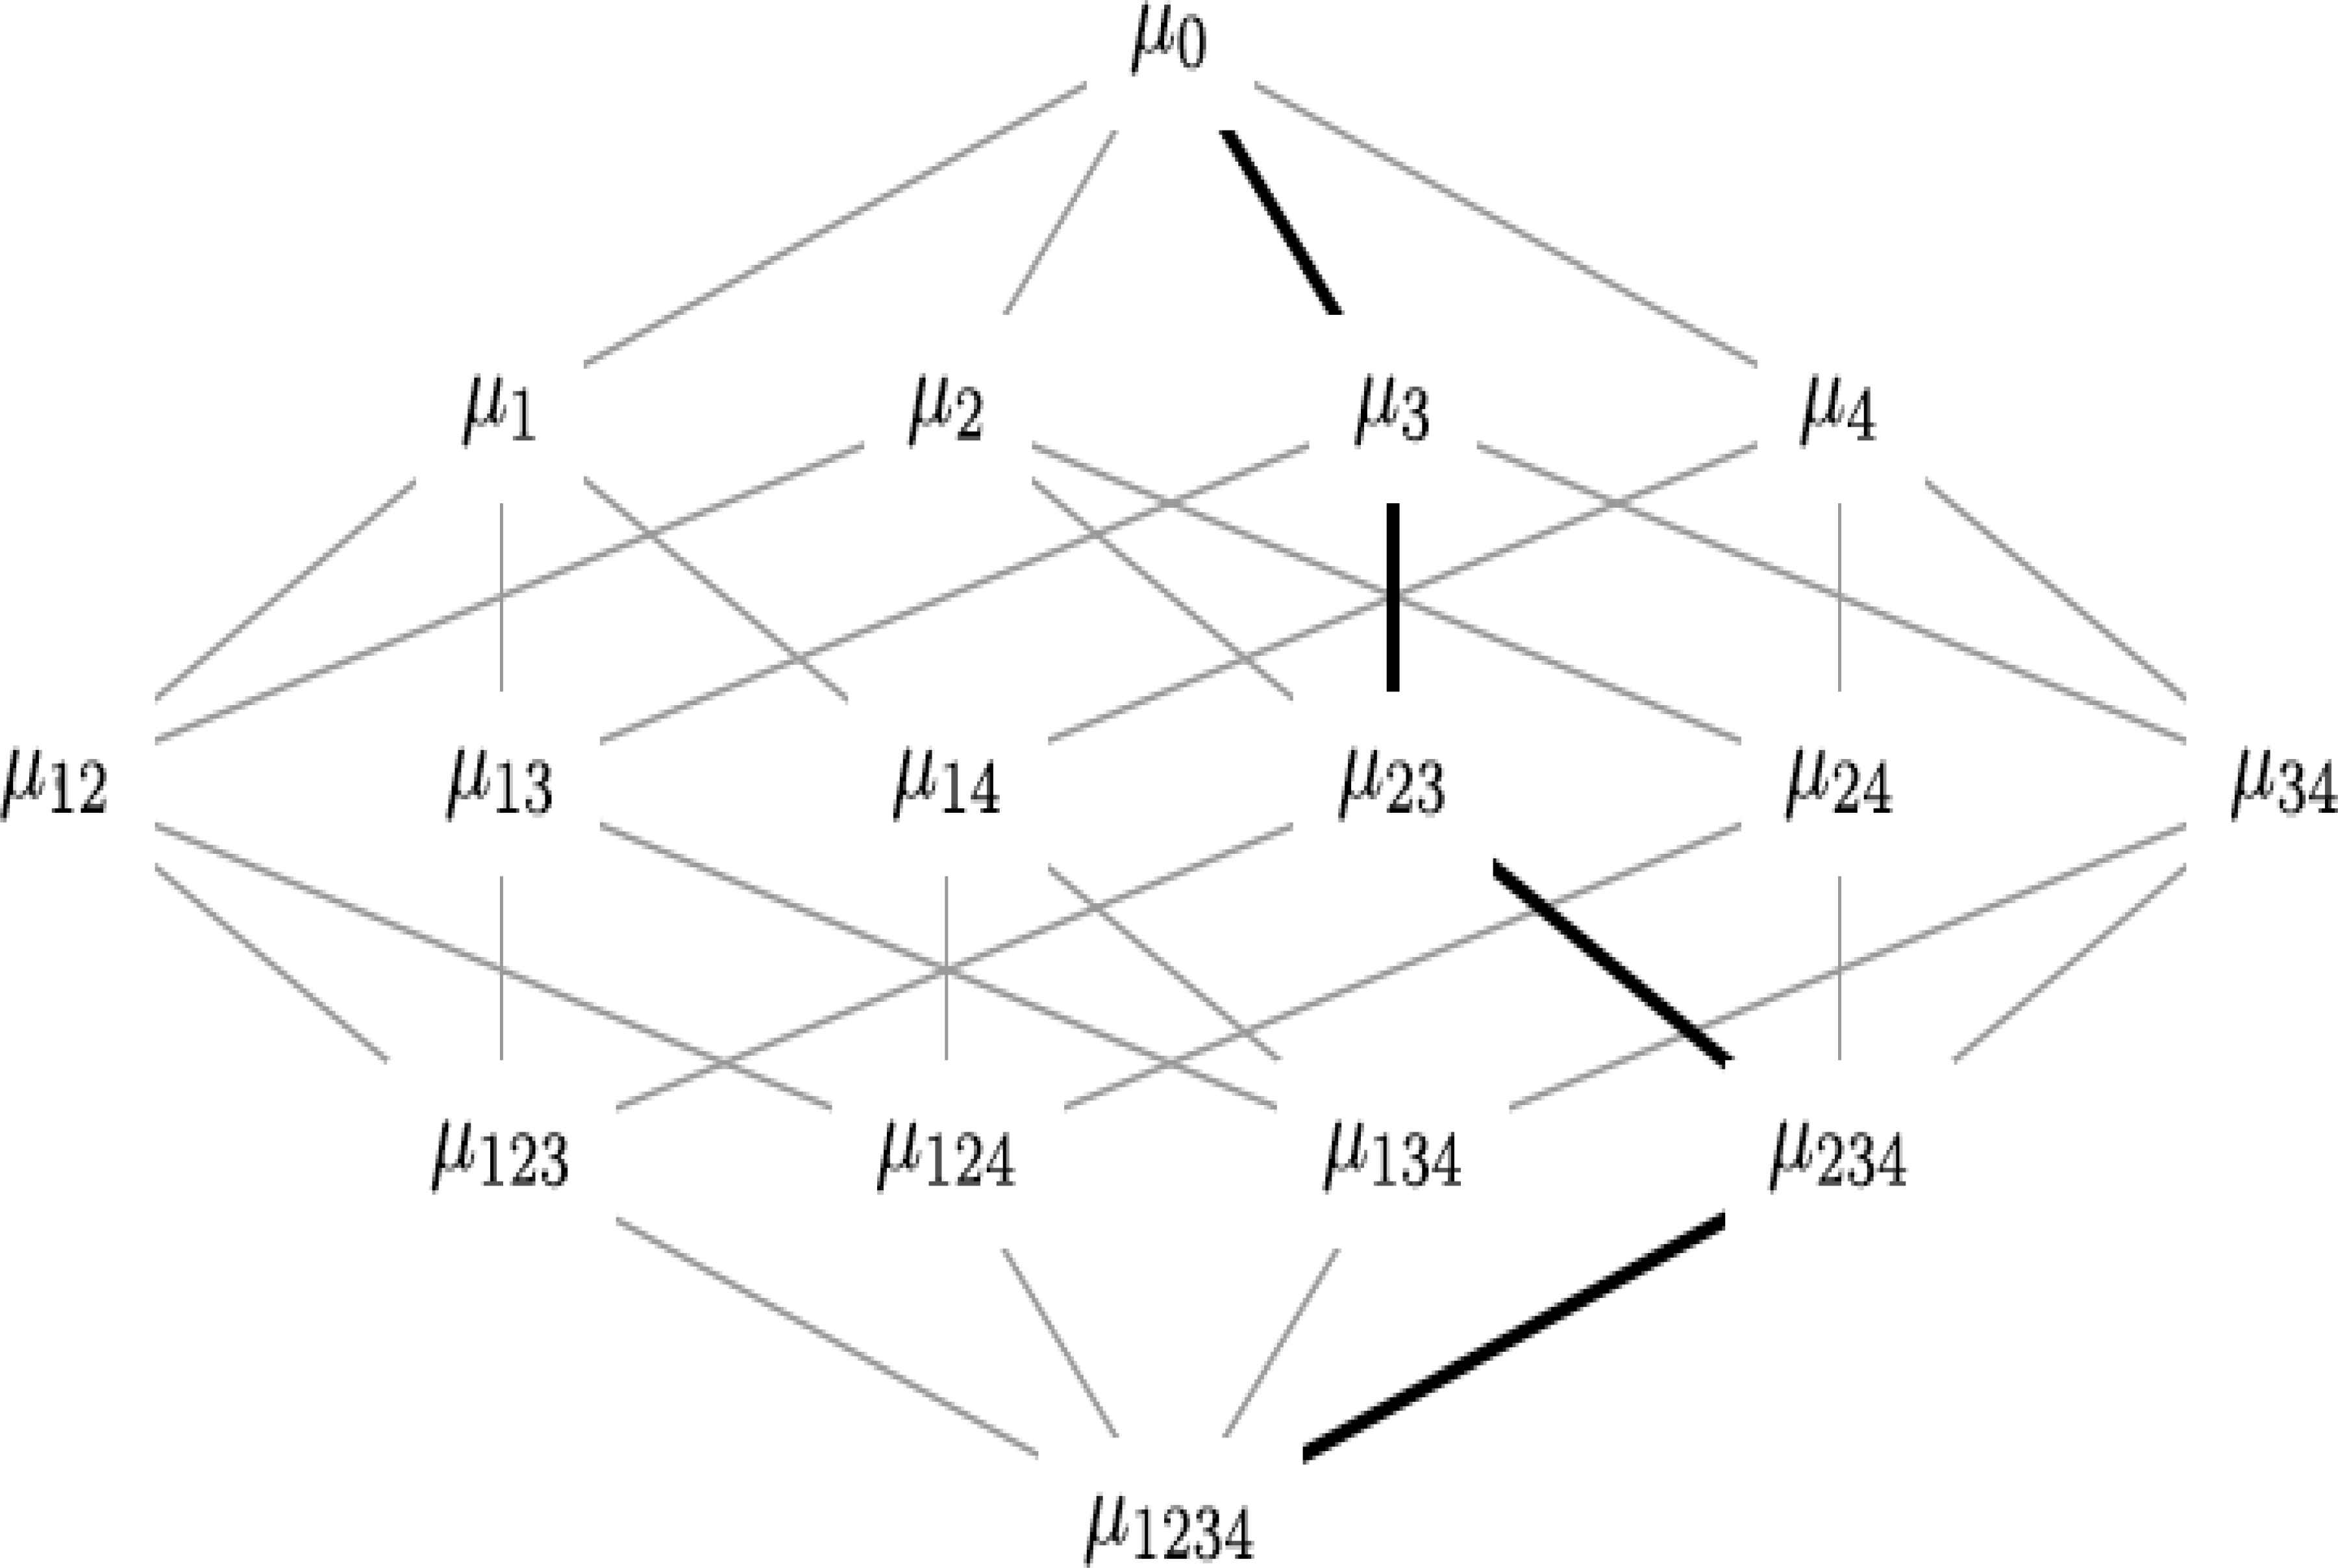 Multi-Scale Fuzzy Feature Selection Method applied to Wood